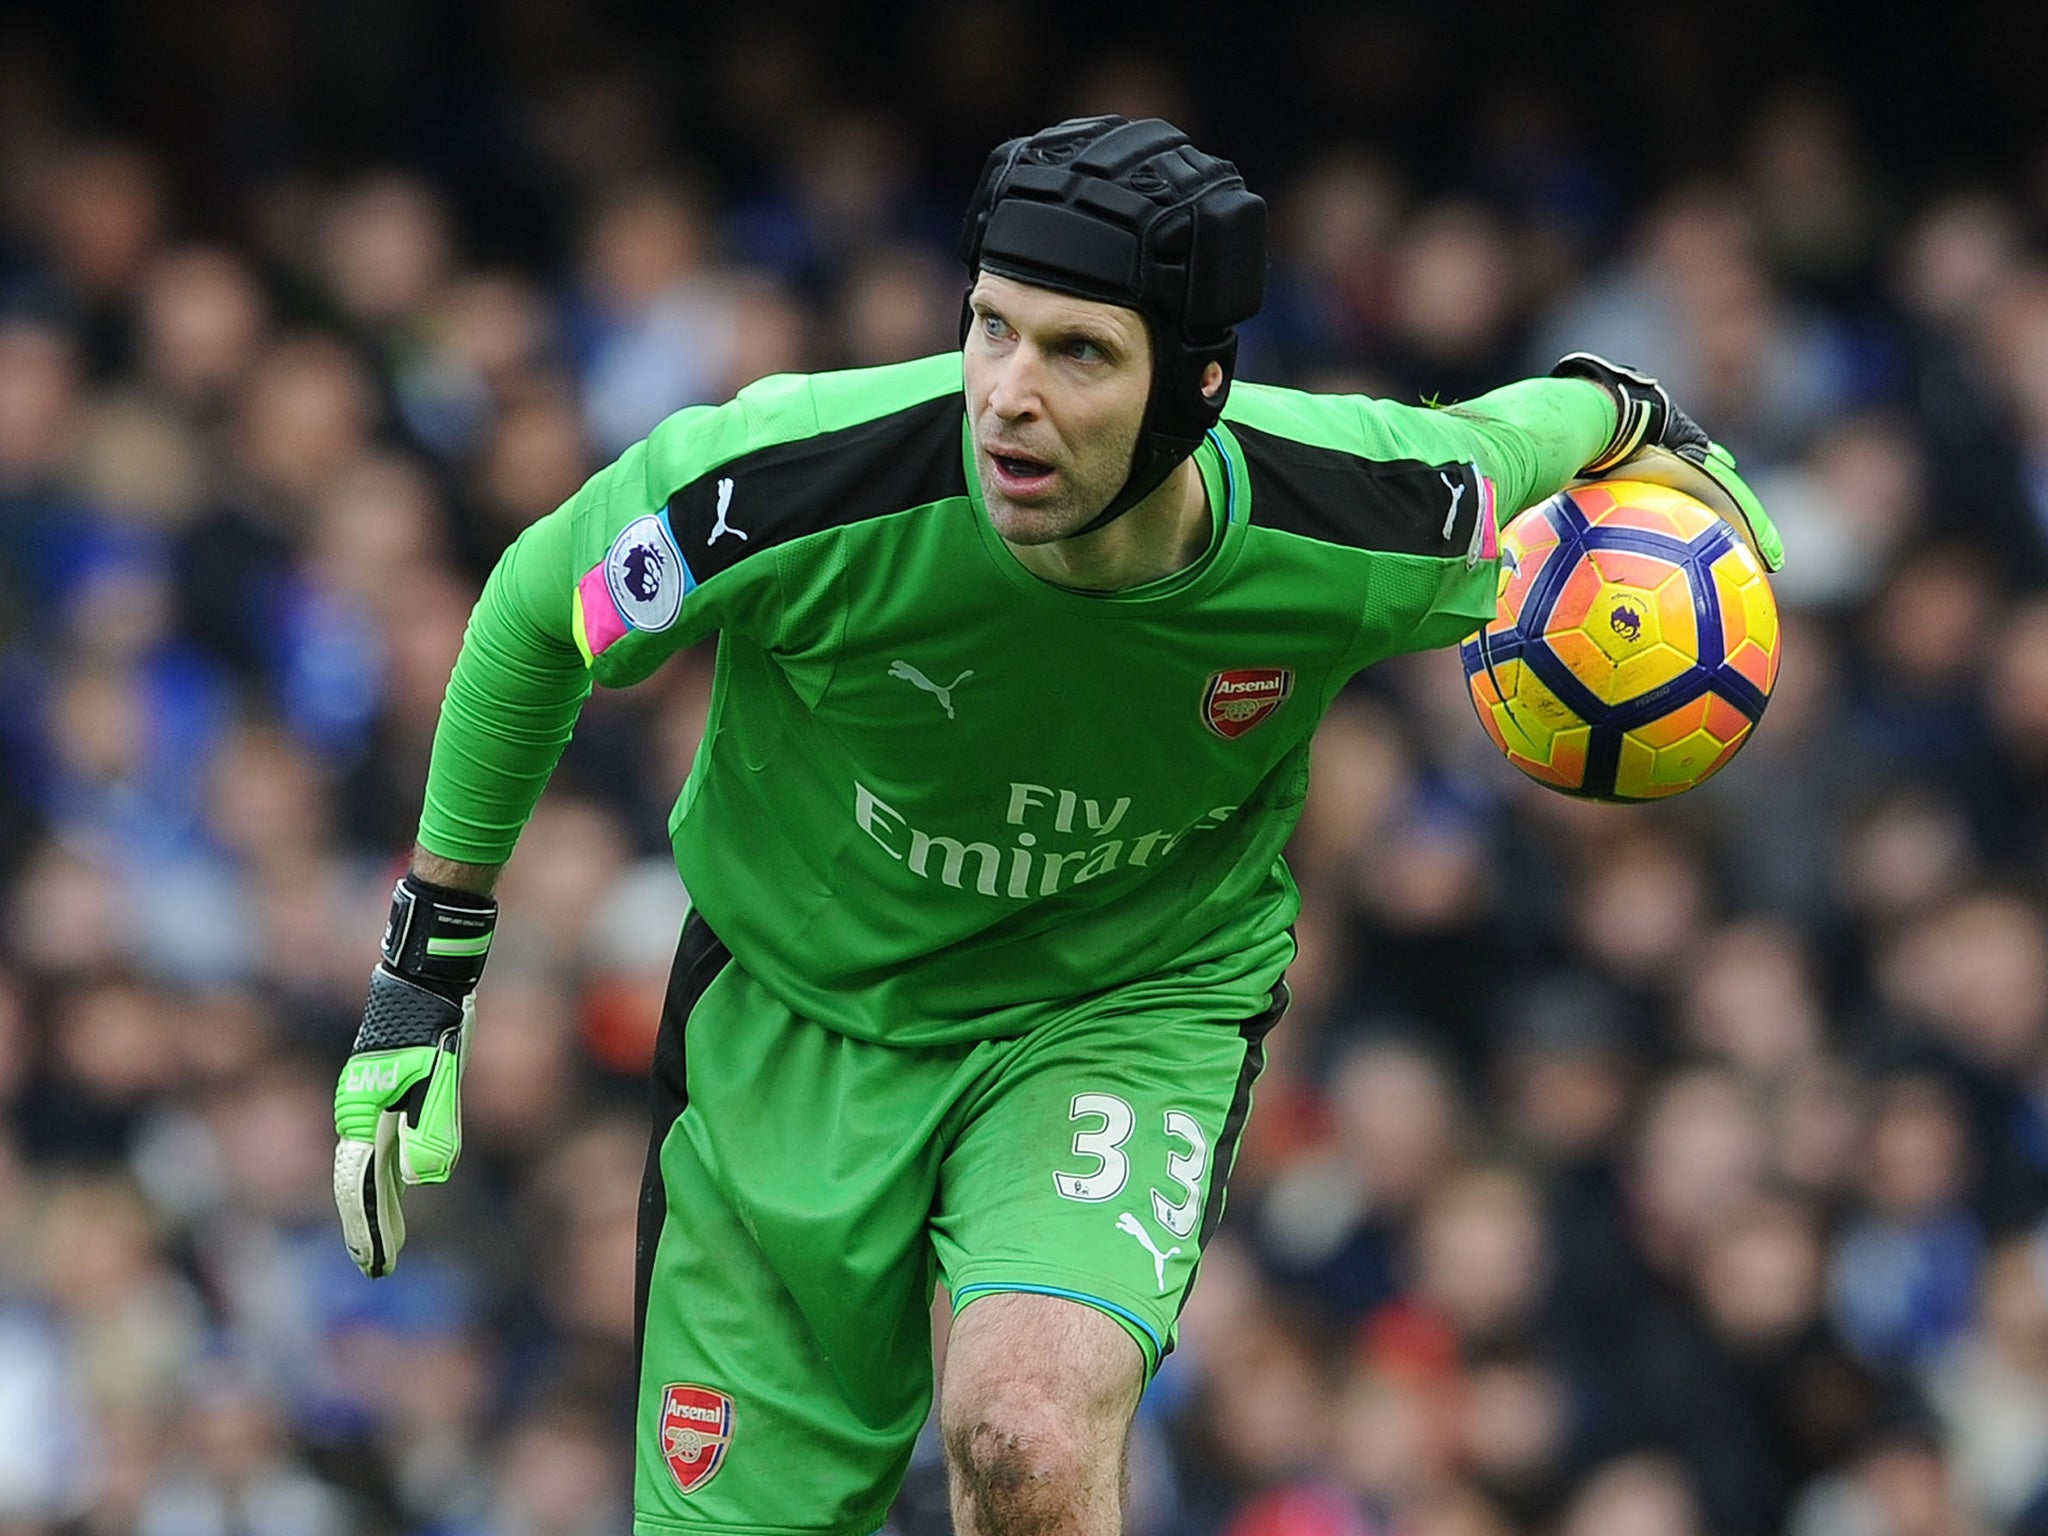 Arsenal goalkeeper Petr Cech sends message of support to Ryan